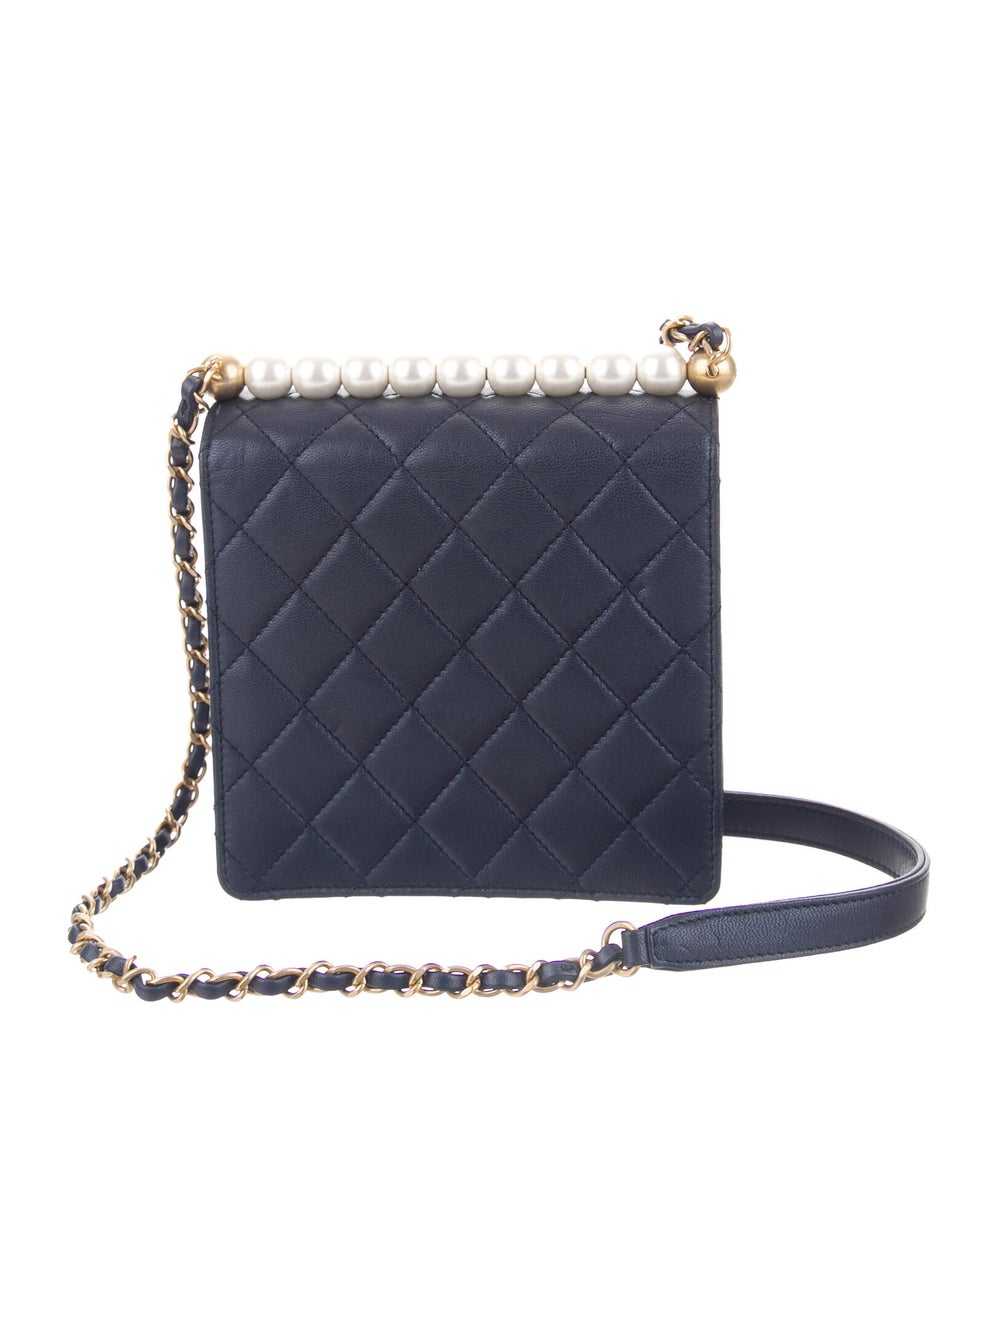 Chanel 2019 Small Chic Pearls Flap Bag Blue - image 4